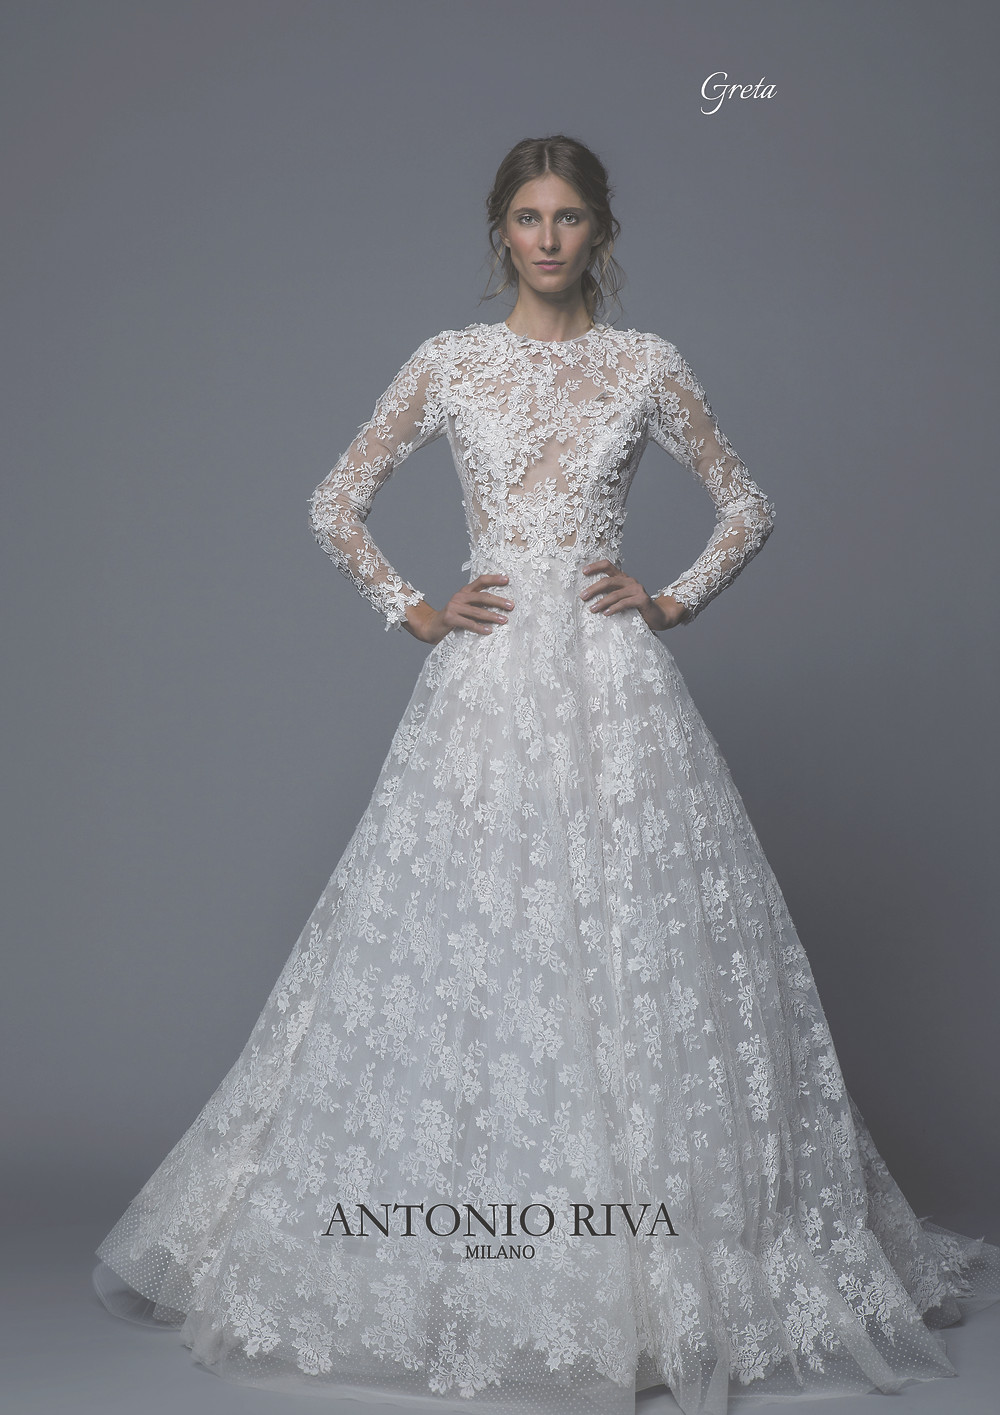 An Antonio Riva 2020 lace ball gown wedding dress with long sleeves and a high neckline